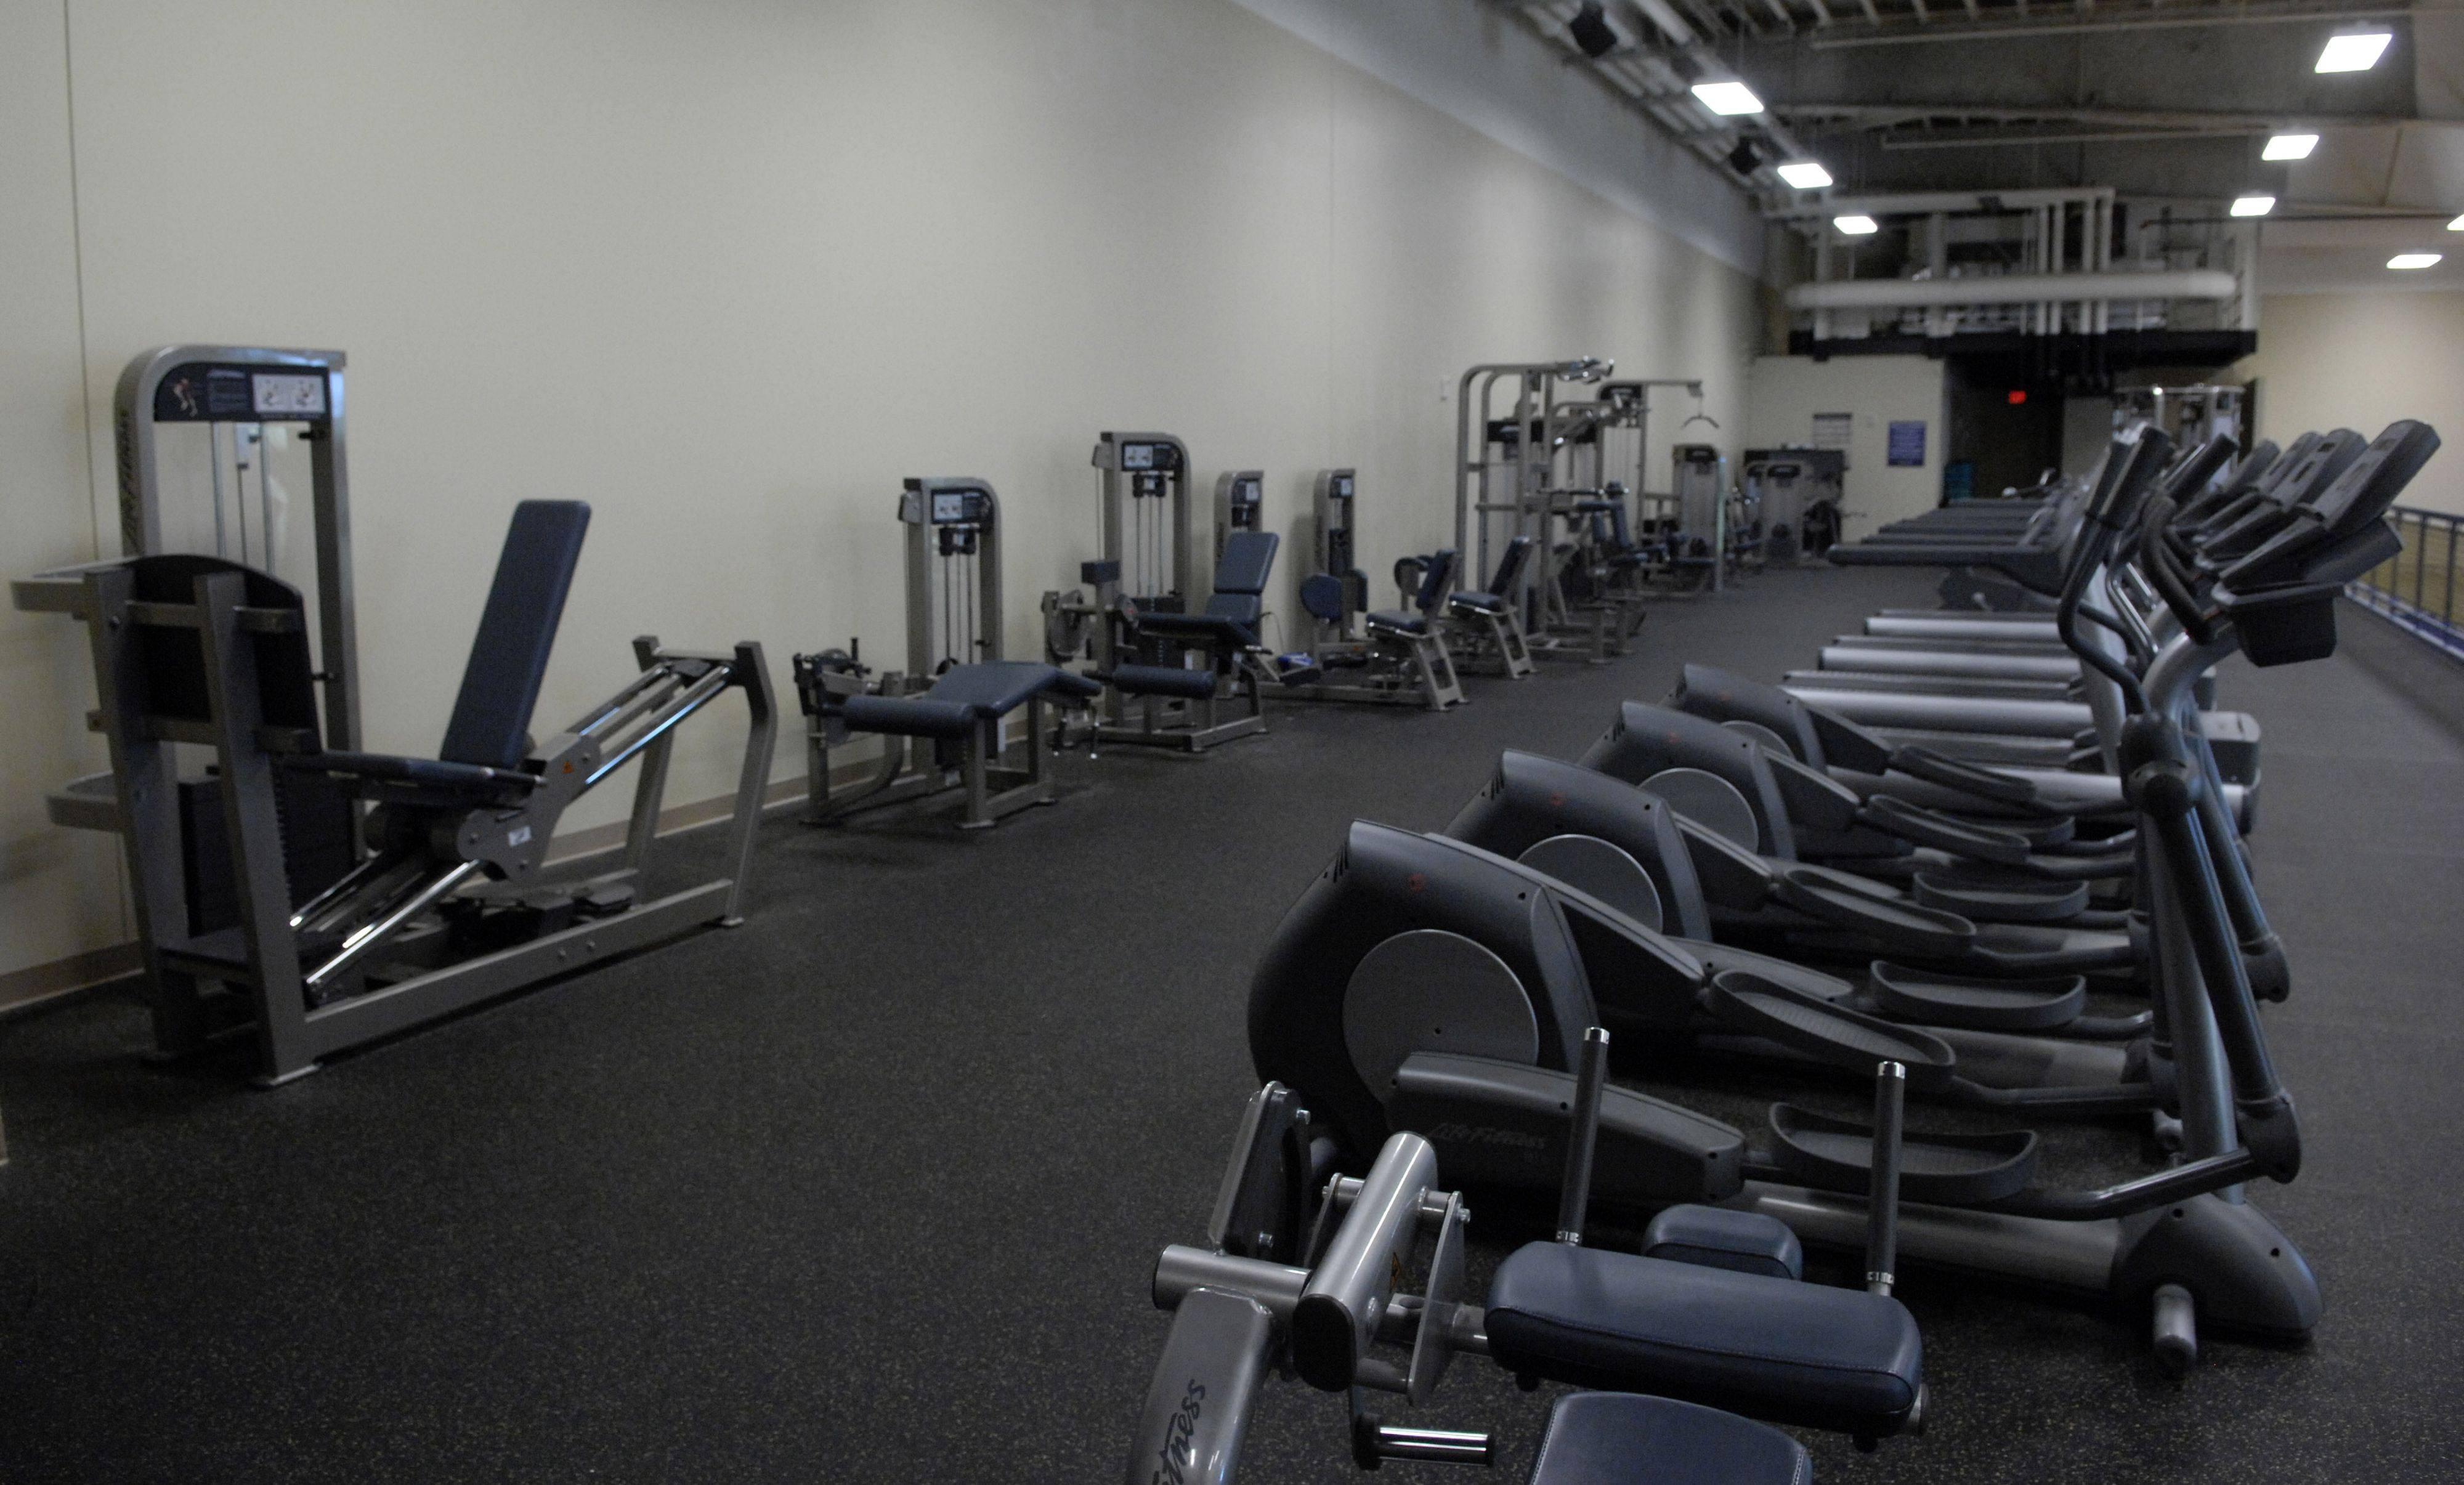 The weight and training area at Harvest Christian Academy in Elgin overlooks the gym.